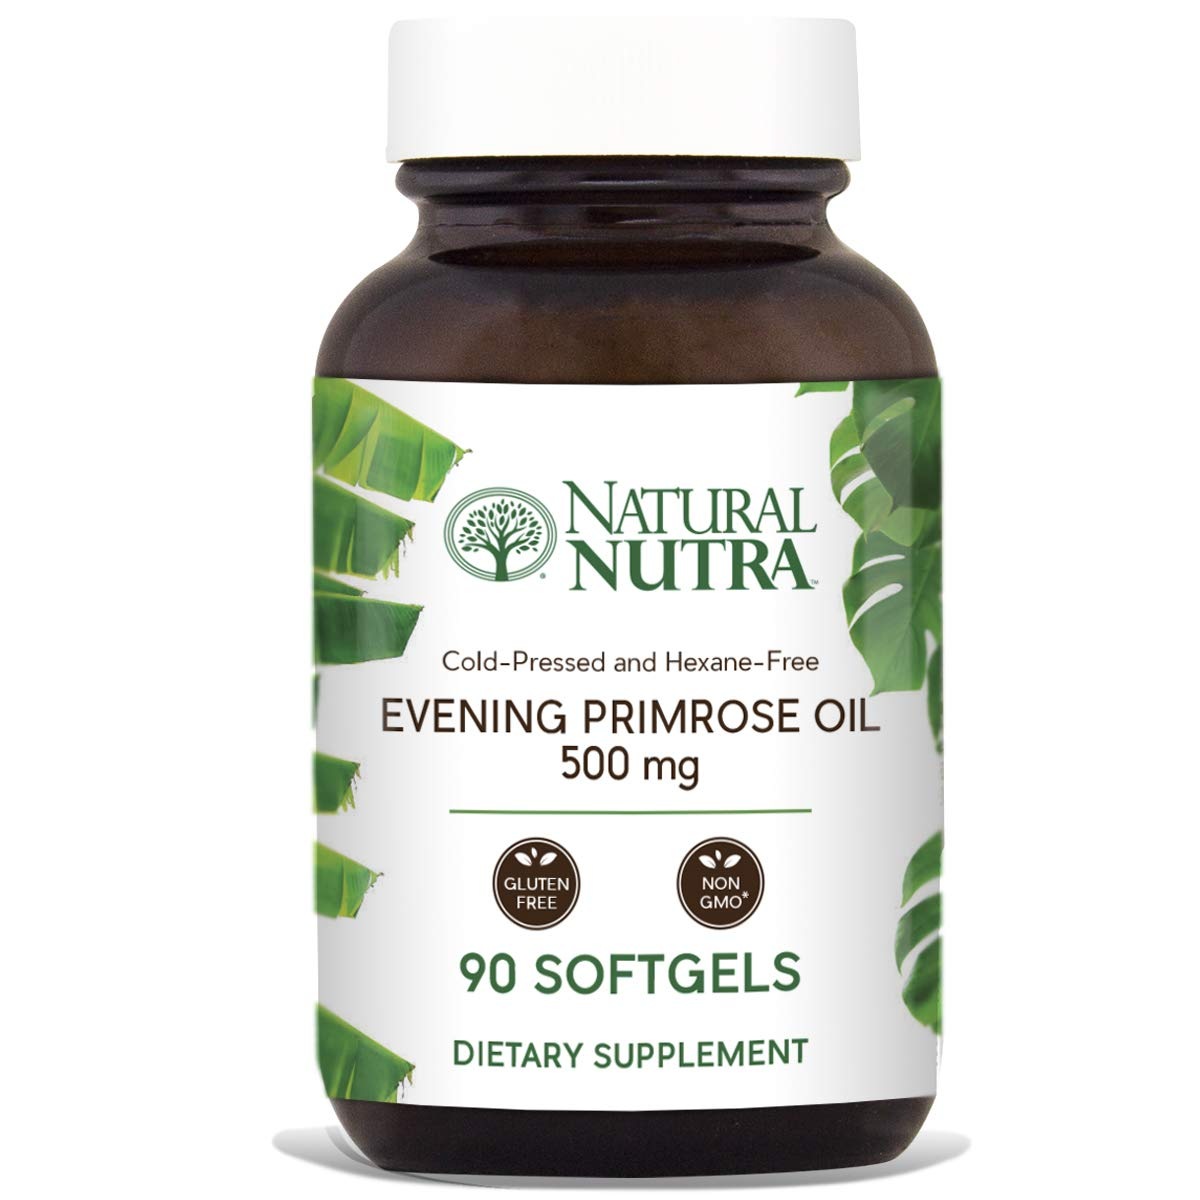 Natural Nutra Evening Primrose Oil Supplement from Fatty Acid, Non-GMO, Cold Pressed, 500 mg, 90 Softgels by Natural Nutra